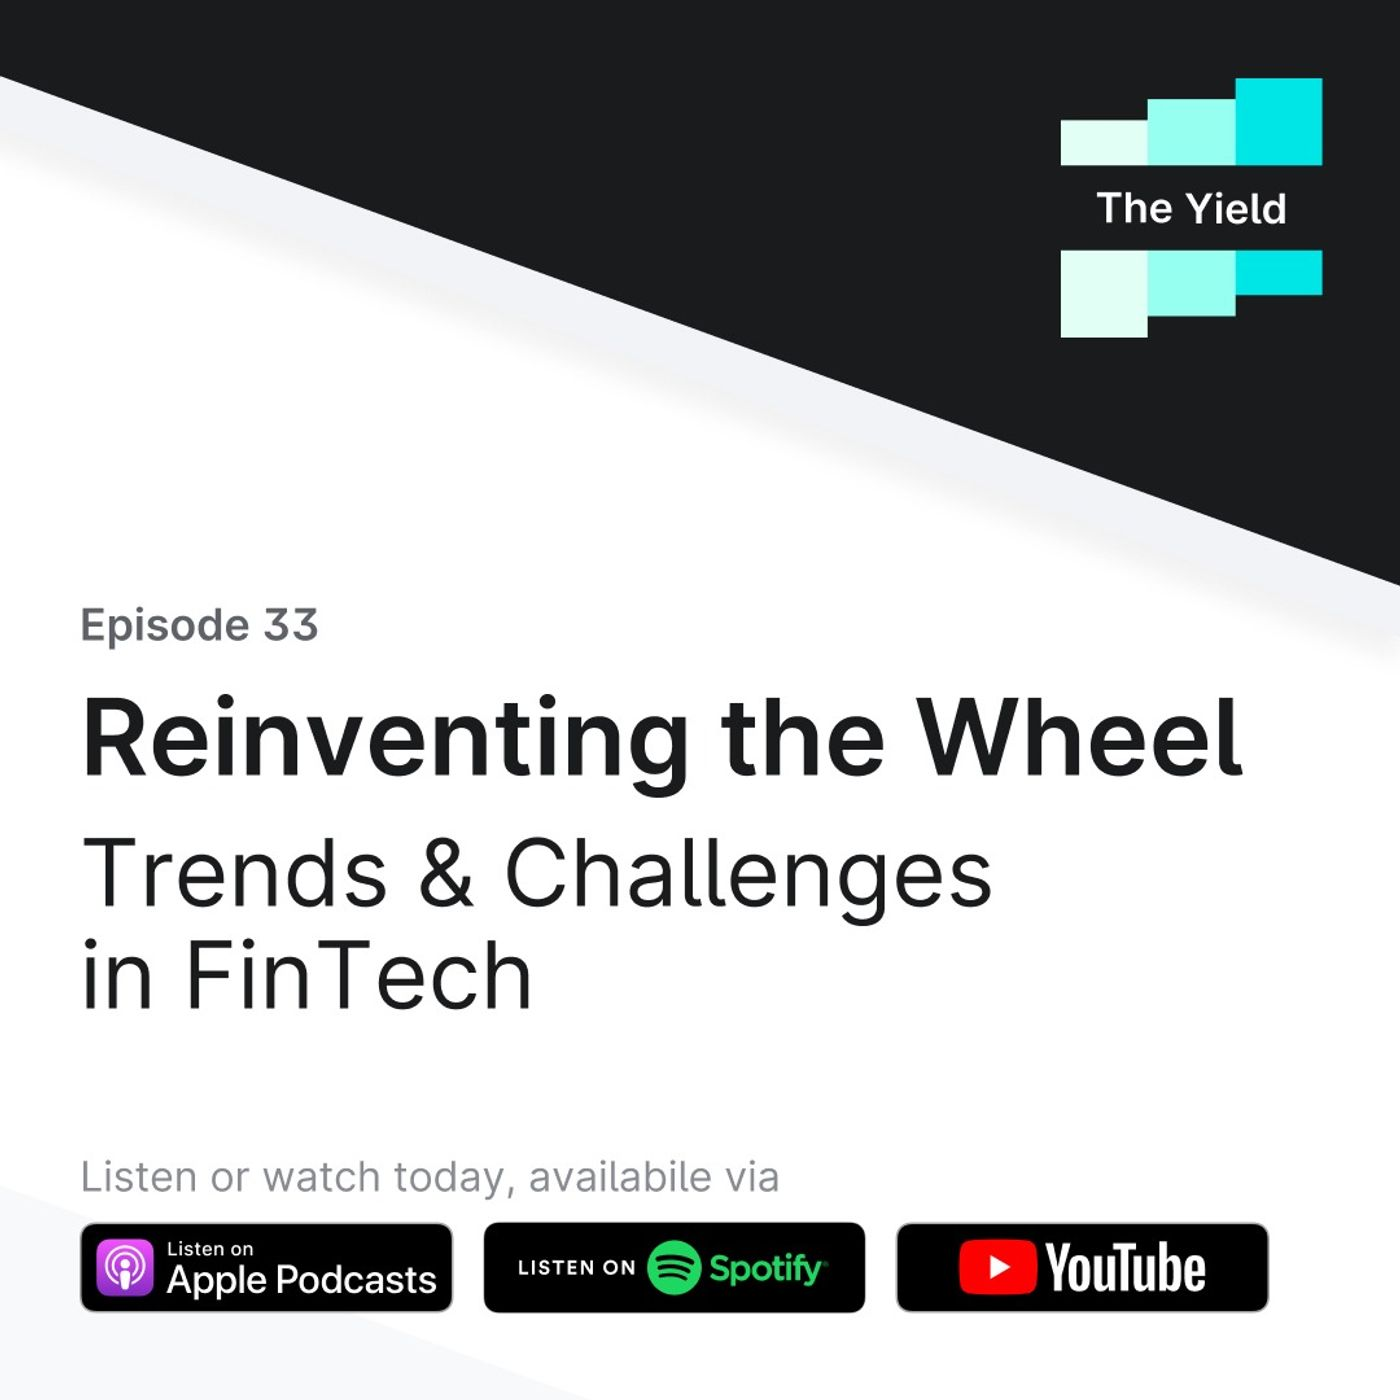 Reinventing the Wheel: Trends & Challenges in FinTech